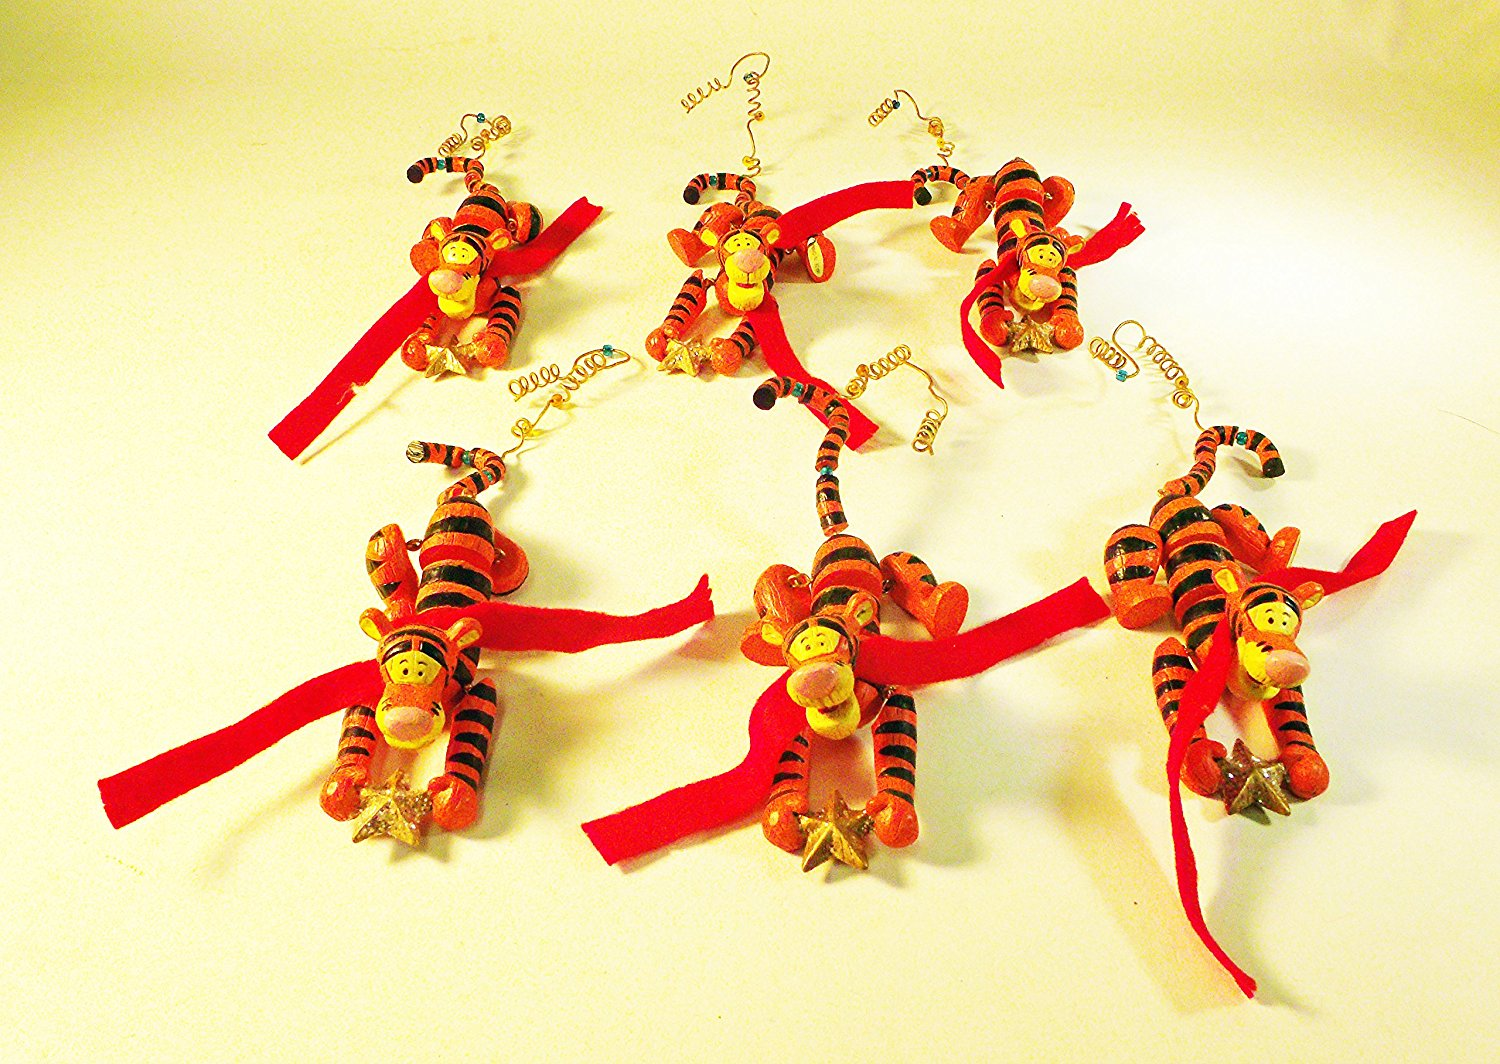 Tigger Christmas Ornaments.Buy Set Of 6 Tigger Christmas Ornaments From The Disney